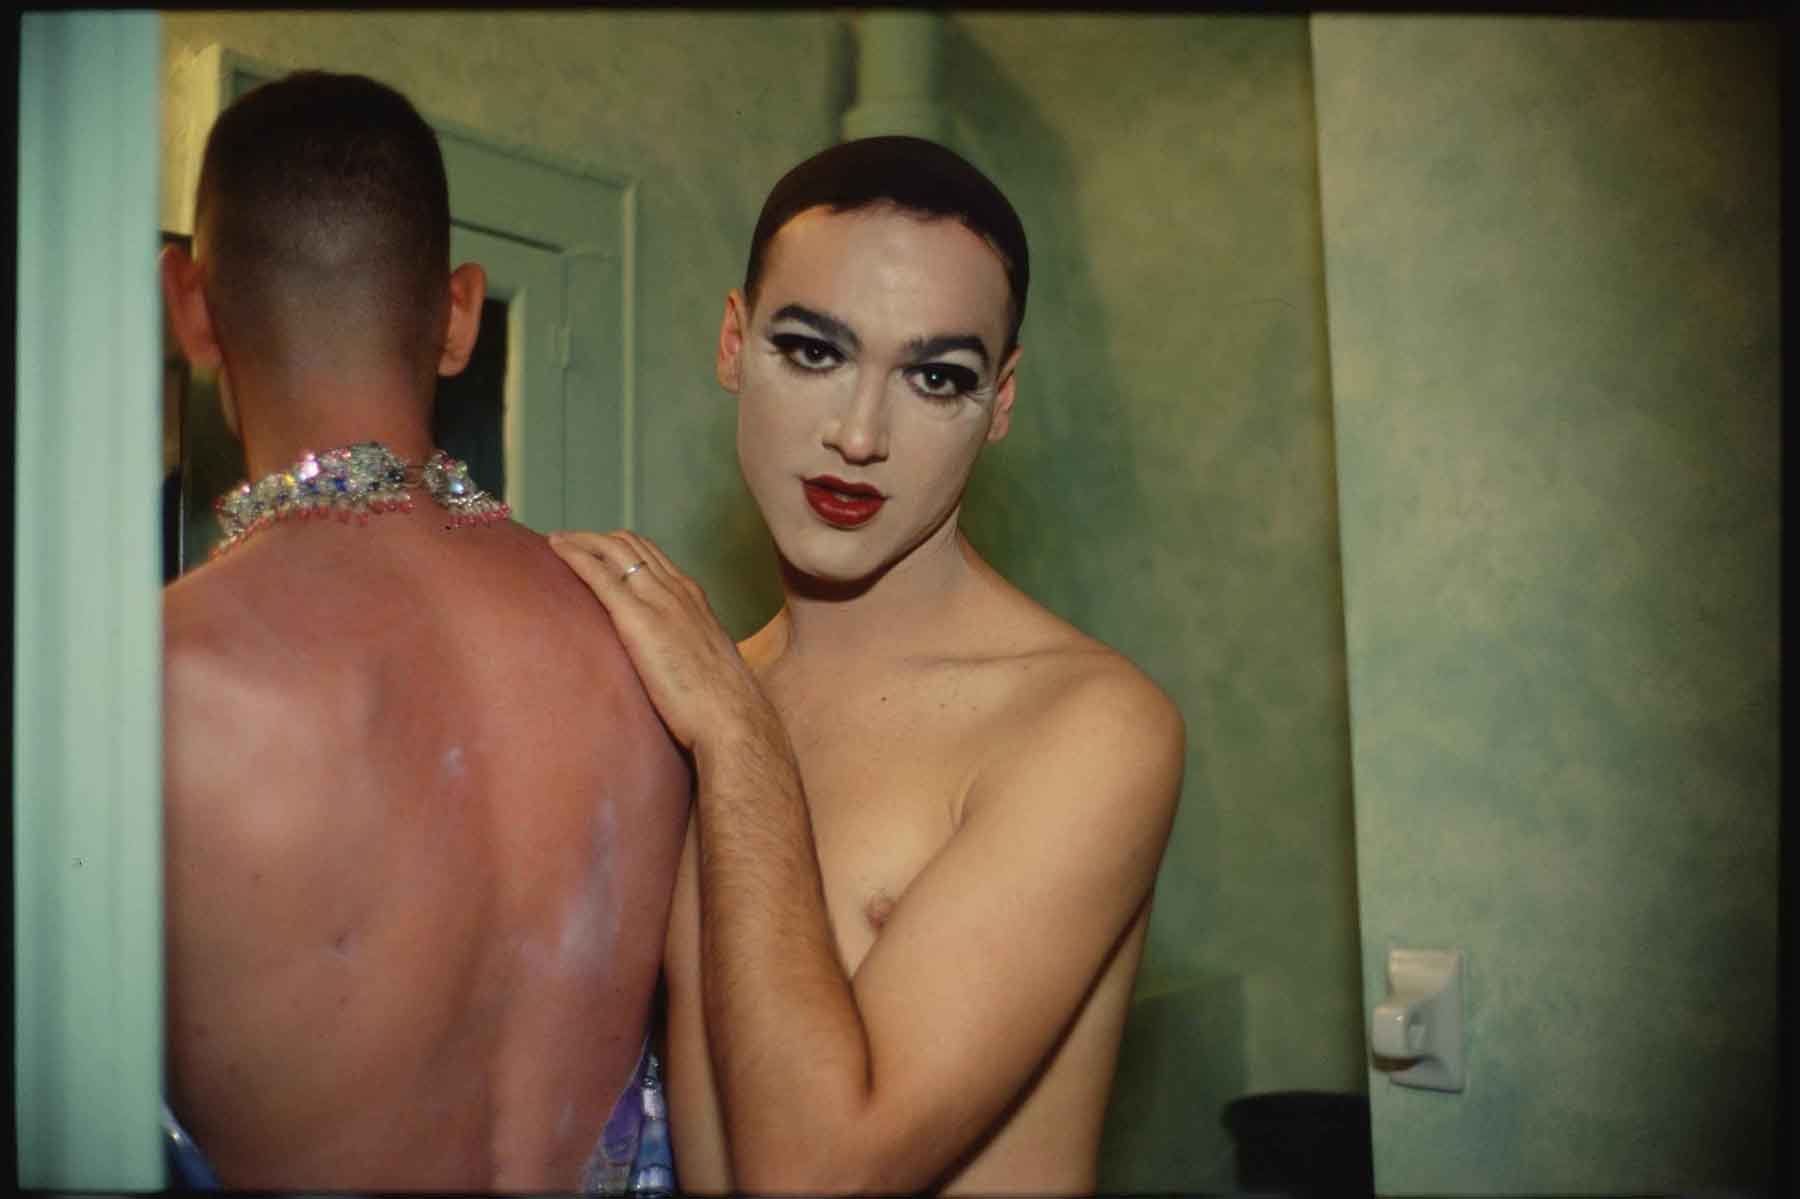 Jimmy_Paulette_and_taboo_in_the_bathroom